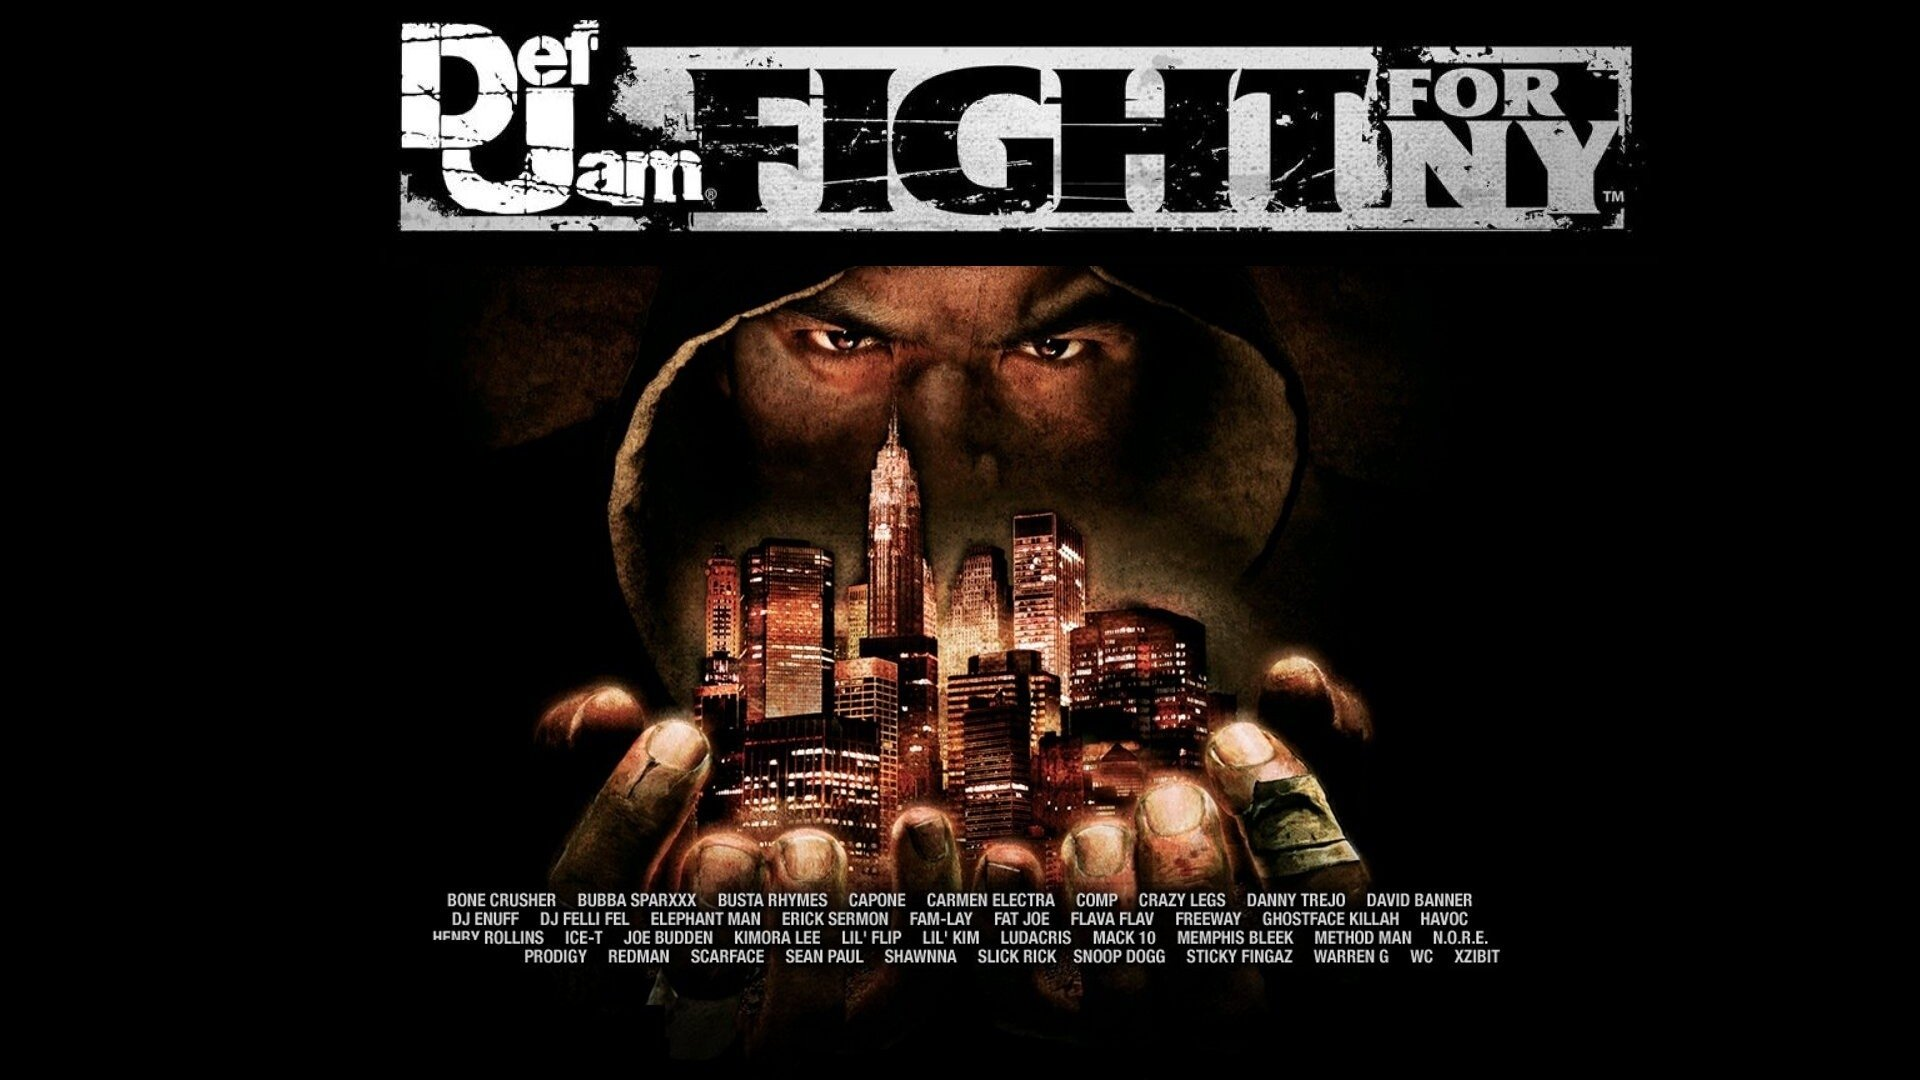 Def Jam Fight For Ny Hd Wallpaper Background Image